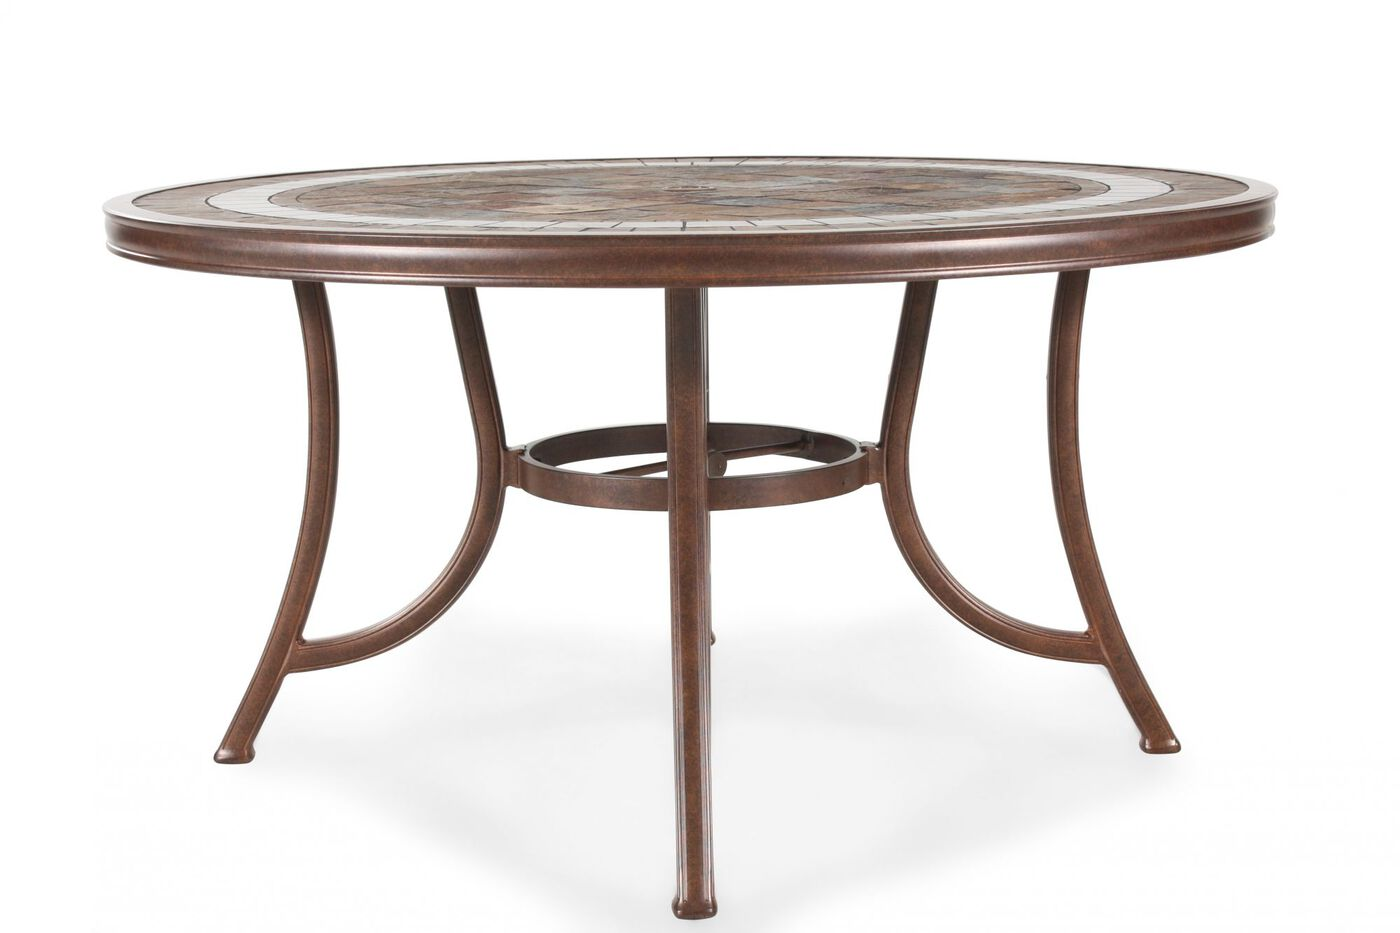 Agio burgandy round stone top table mathis brothers for Html table th always on top